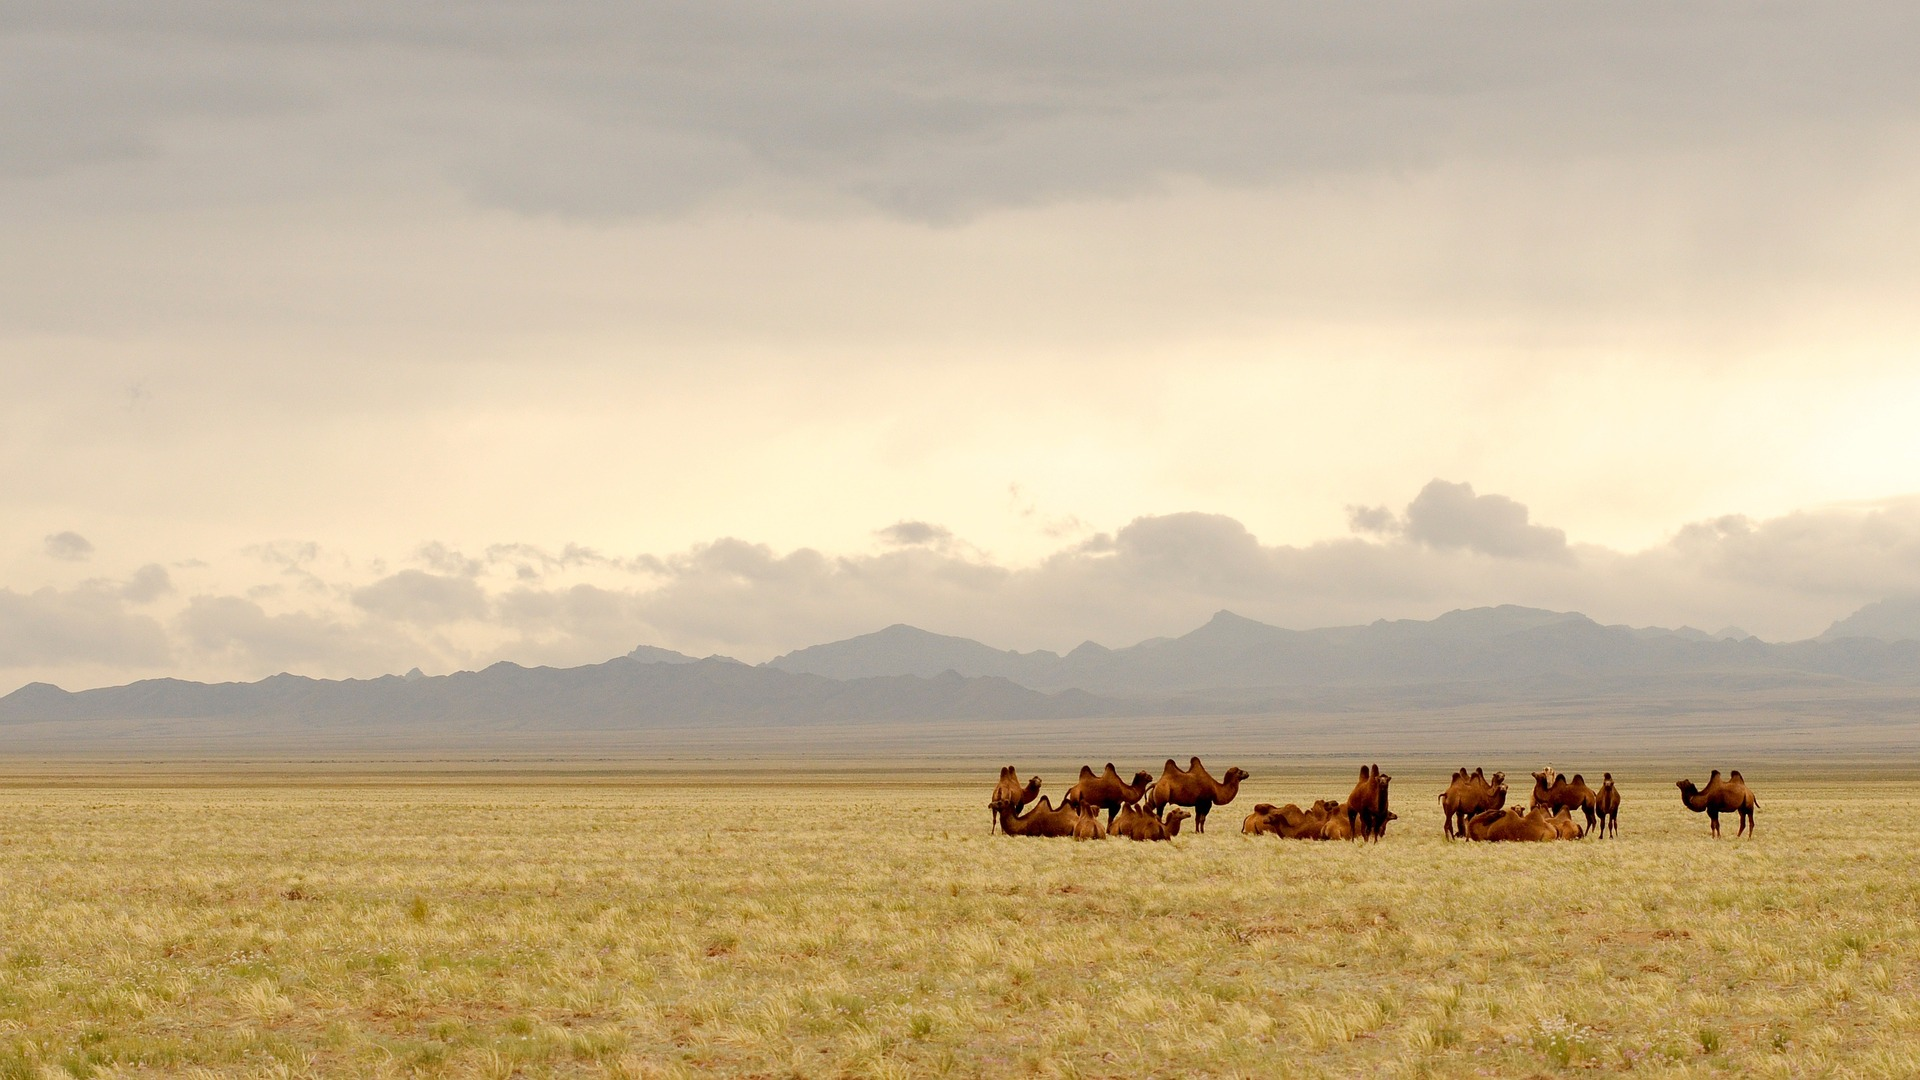 Mongolia | Top 5 Most Underrated Travel Destinations in the World | MVMT Blog